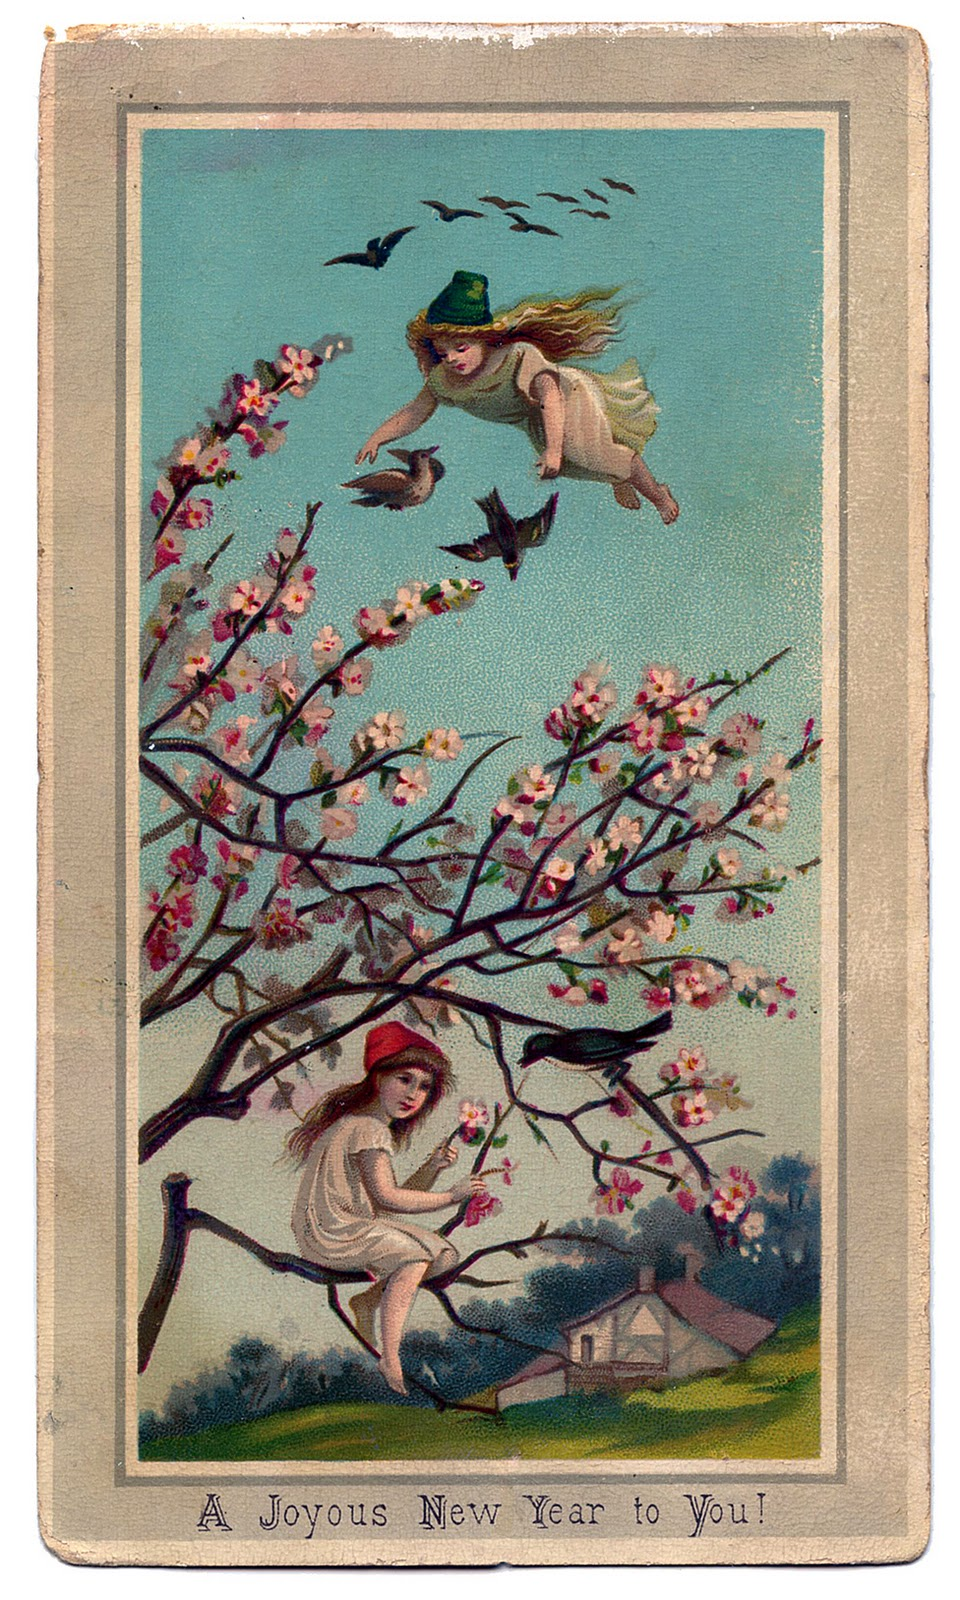 Victorian New Year Graphic   Fairy Girls with Cherry Blossoms   The     Victorian New Year Graphic     Fairy Girls with Cherry Blossoms